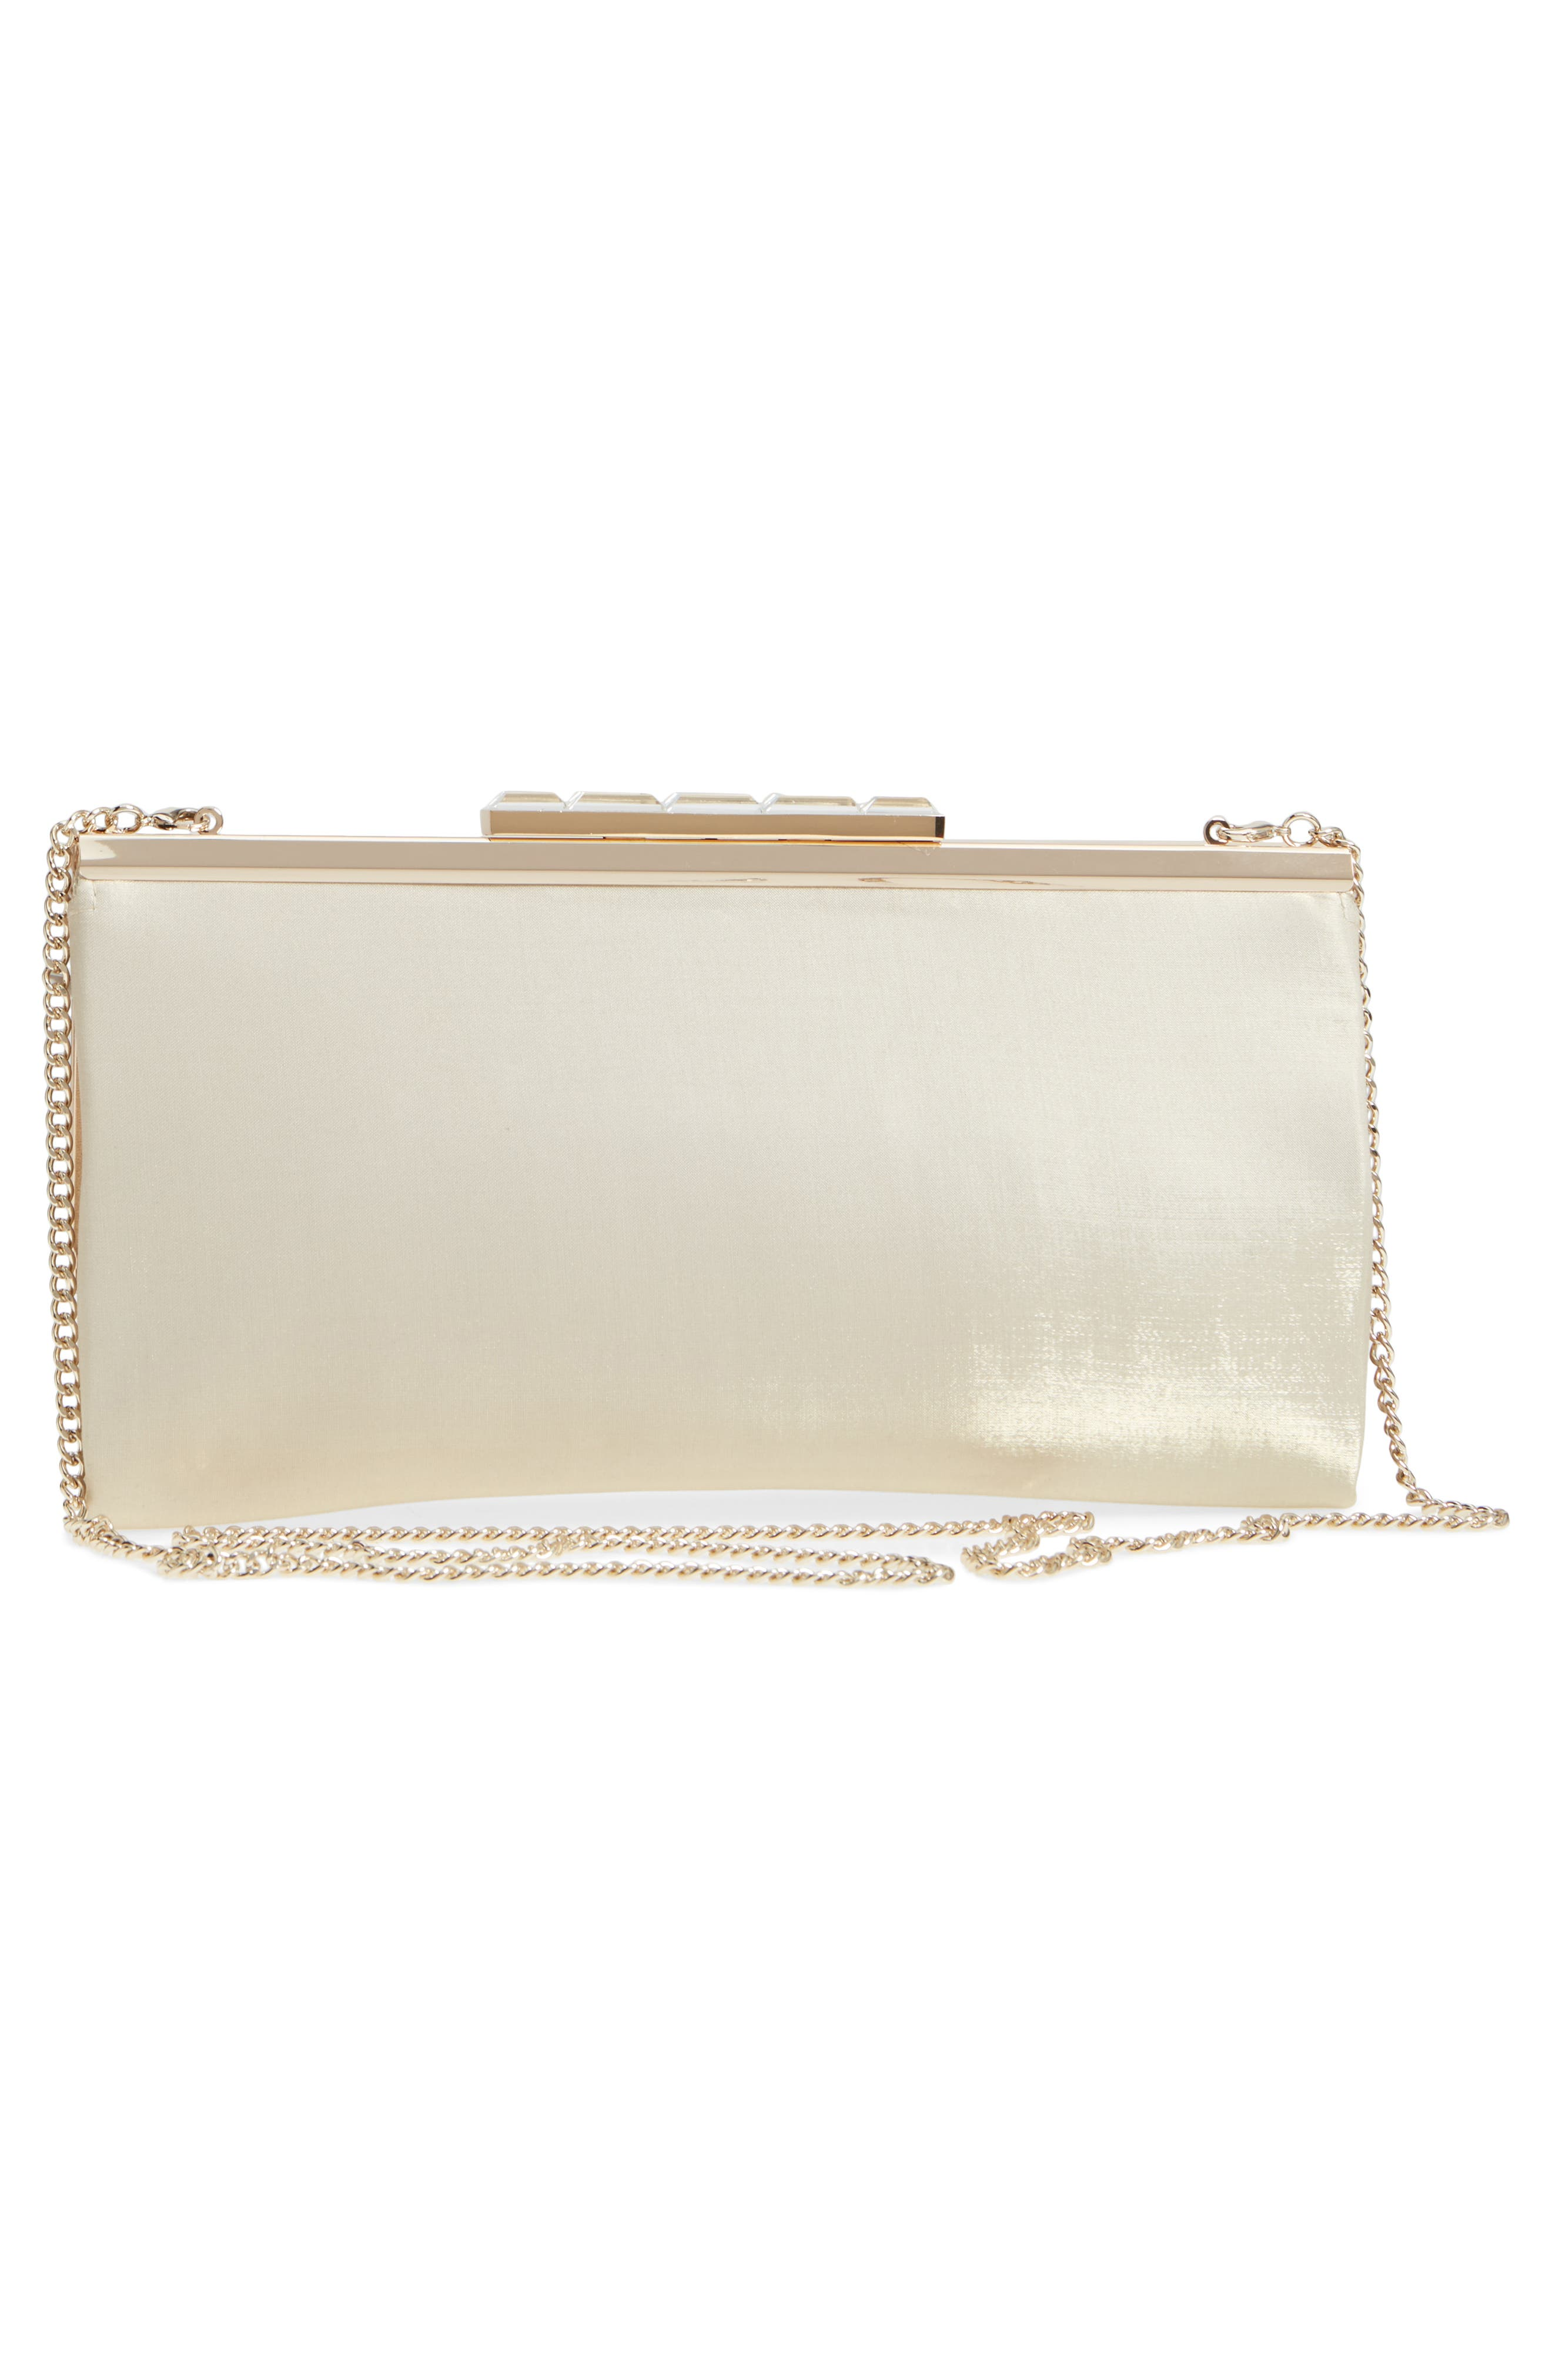 Crystal Clasp Shimmer Clutch,                             Alternate thumbnail 3, color,                             270